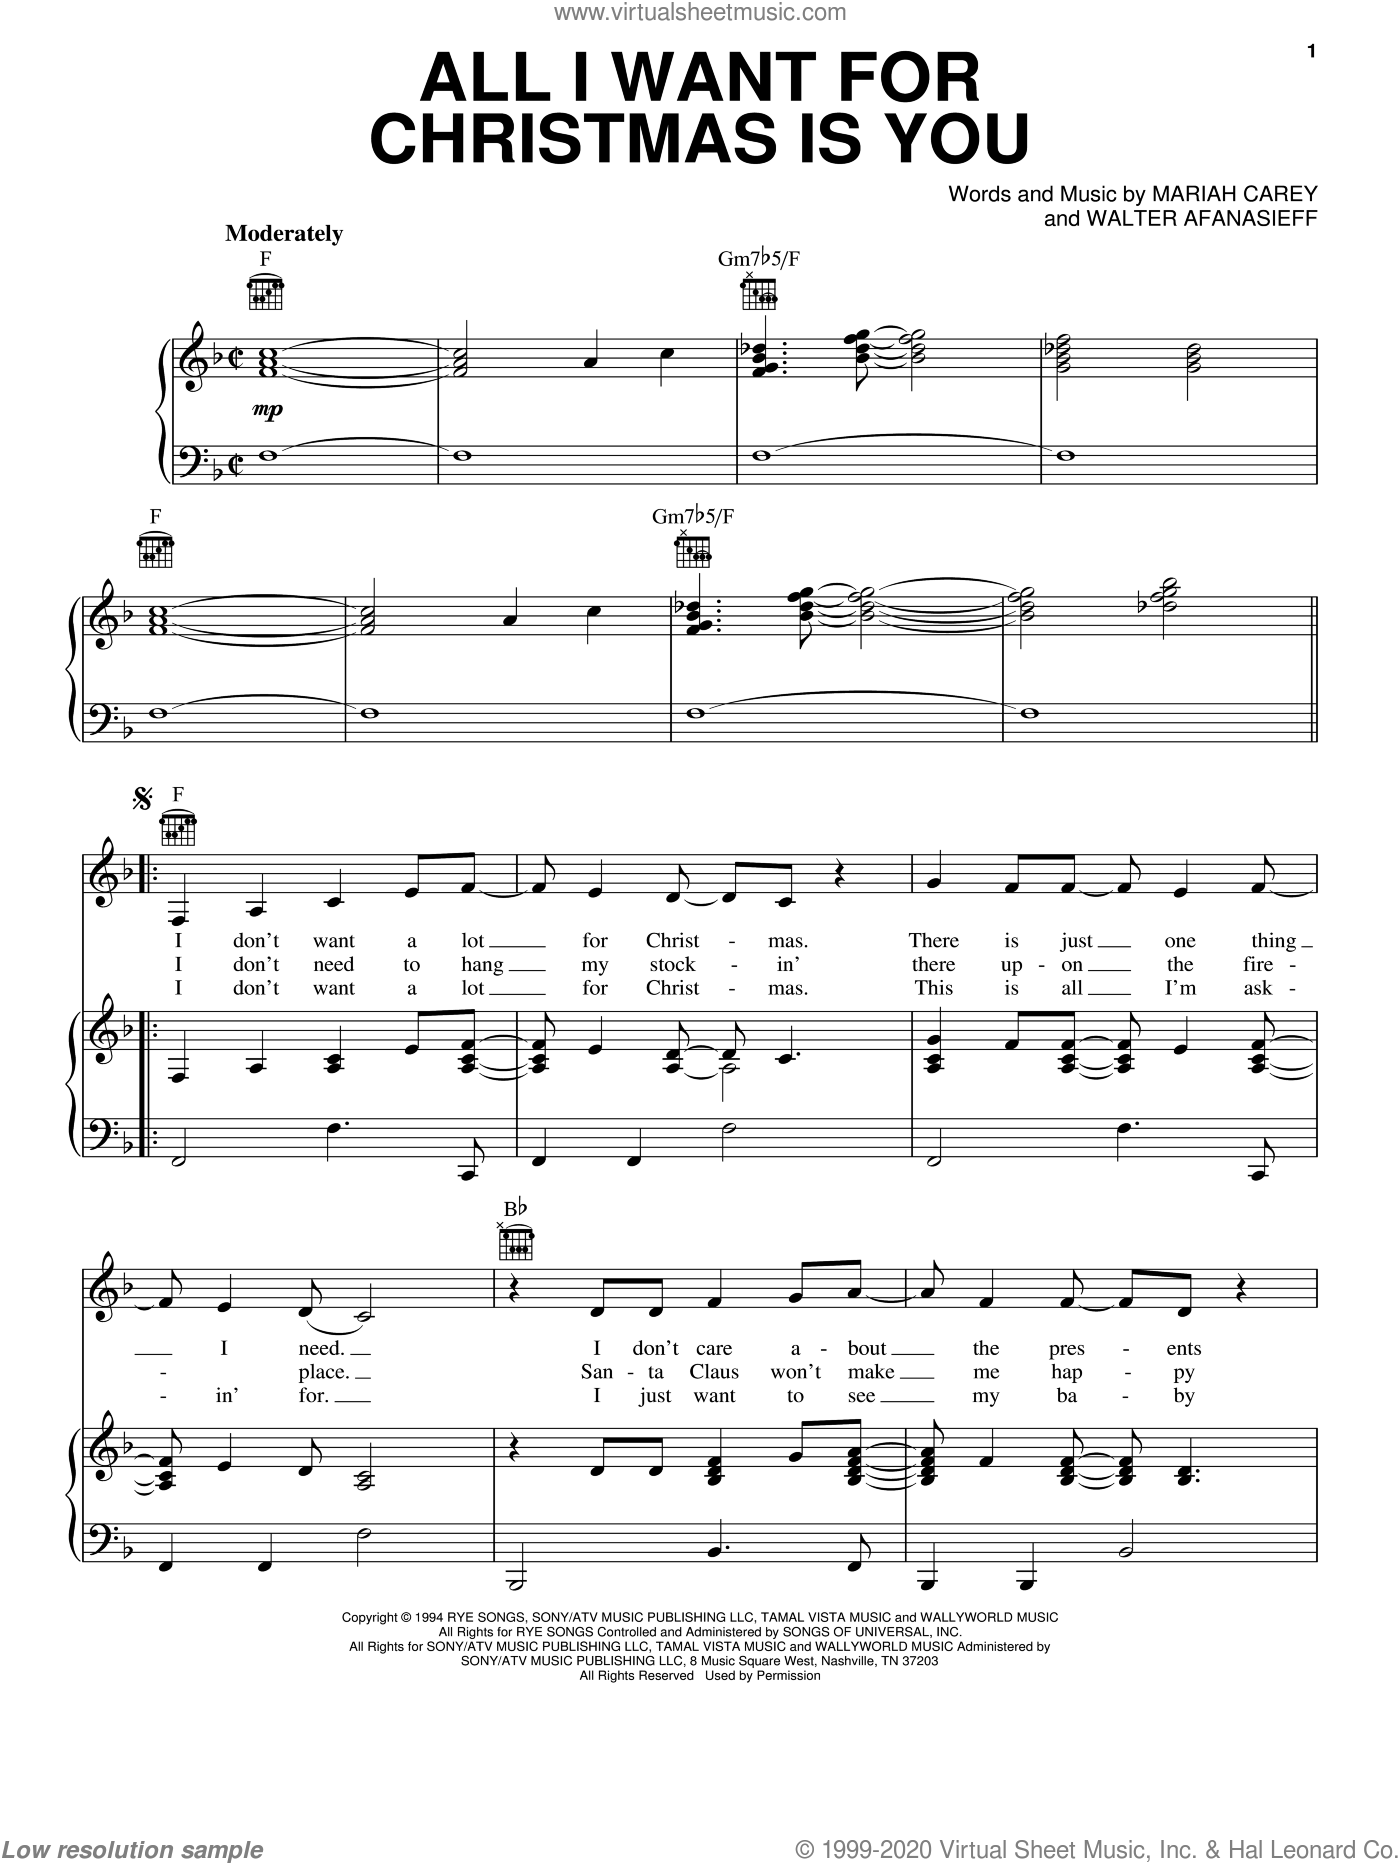 All I Want For Christmas Is You sheet music for voice, piano or guitar by Lady Antebellum